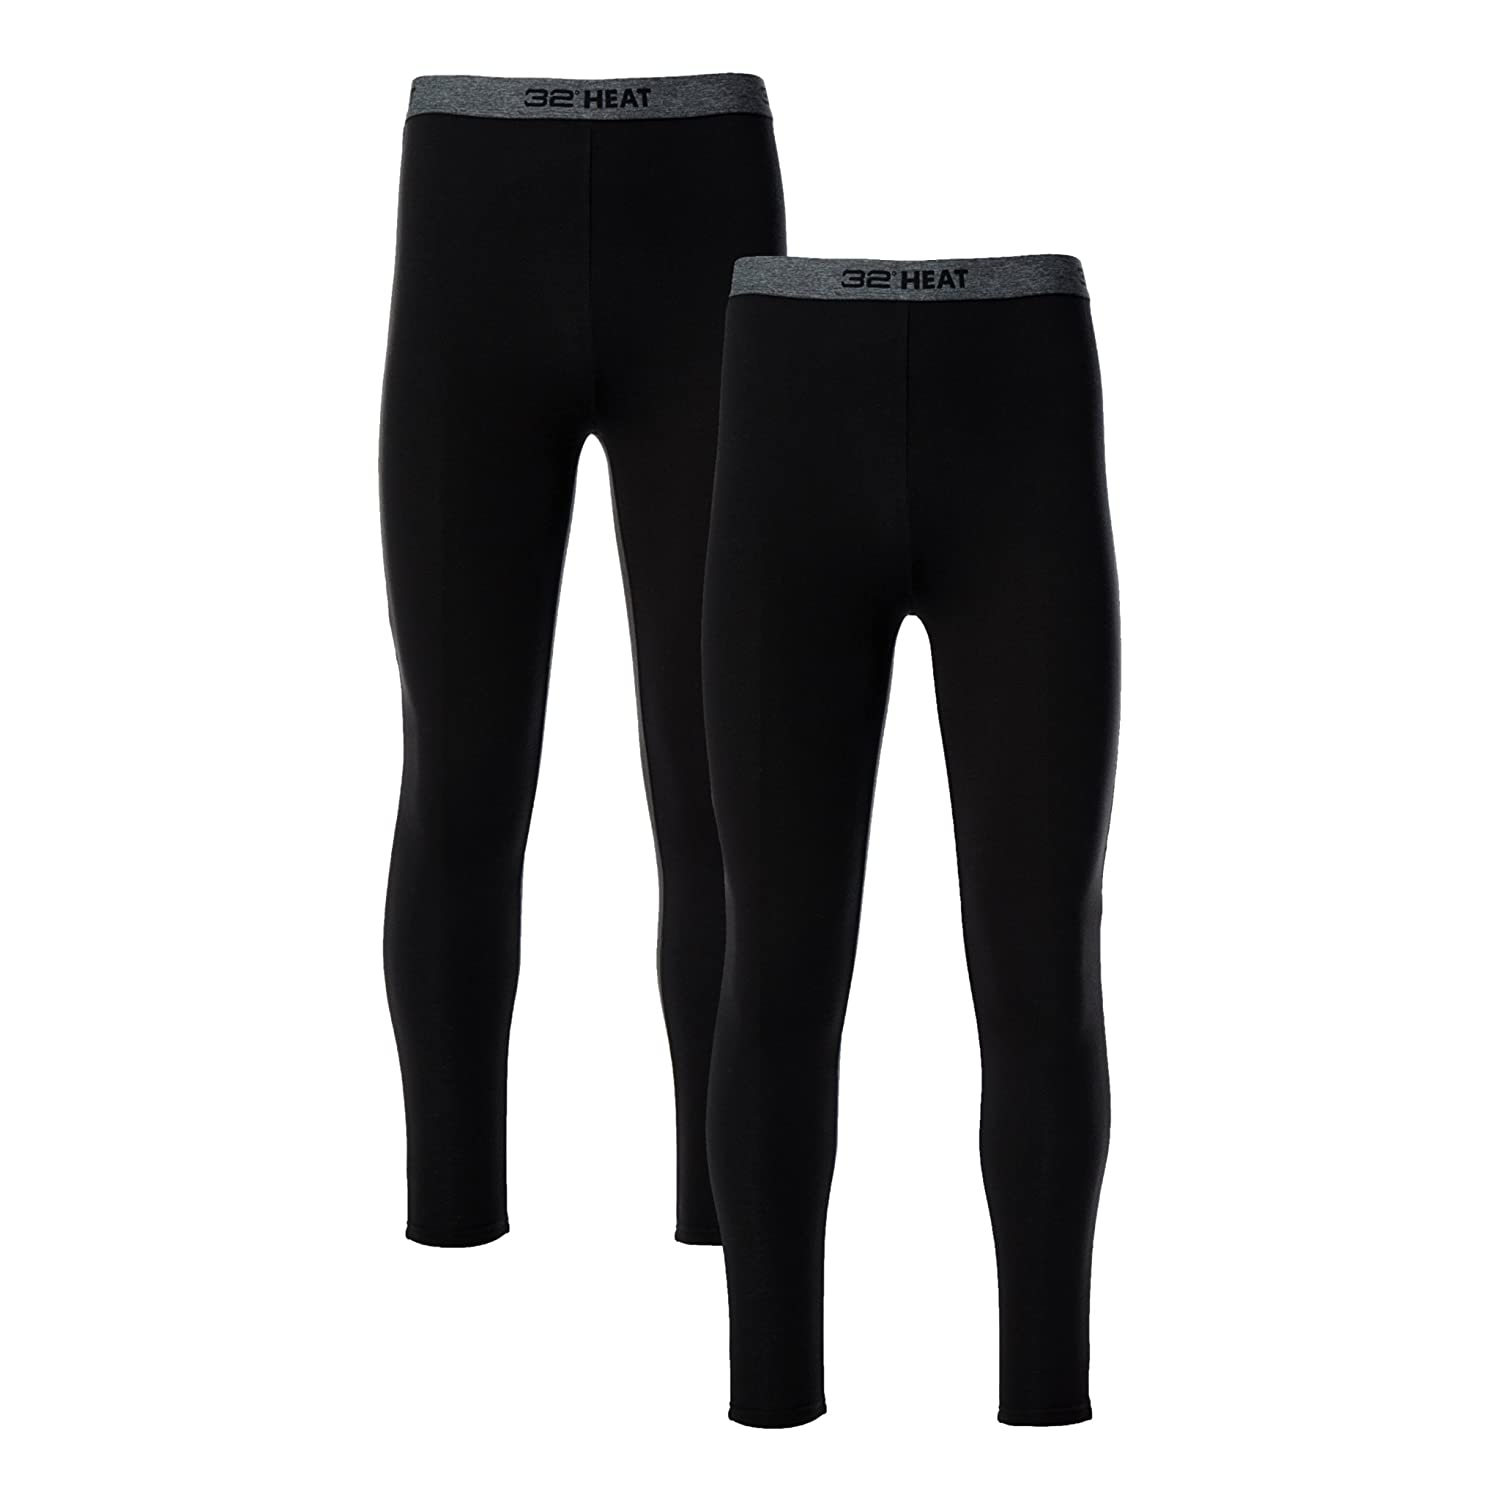 32 DEGREES Mens 2 Pack Heat Performance Thermal Baselayer Pant Leggings